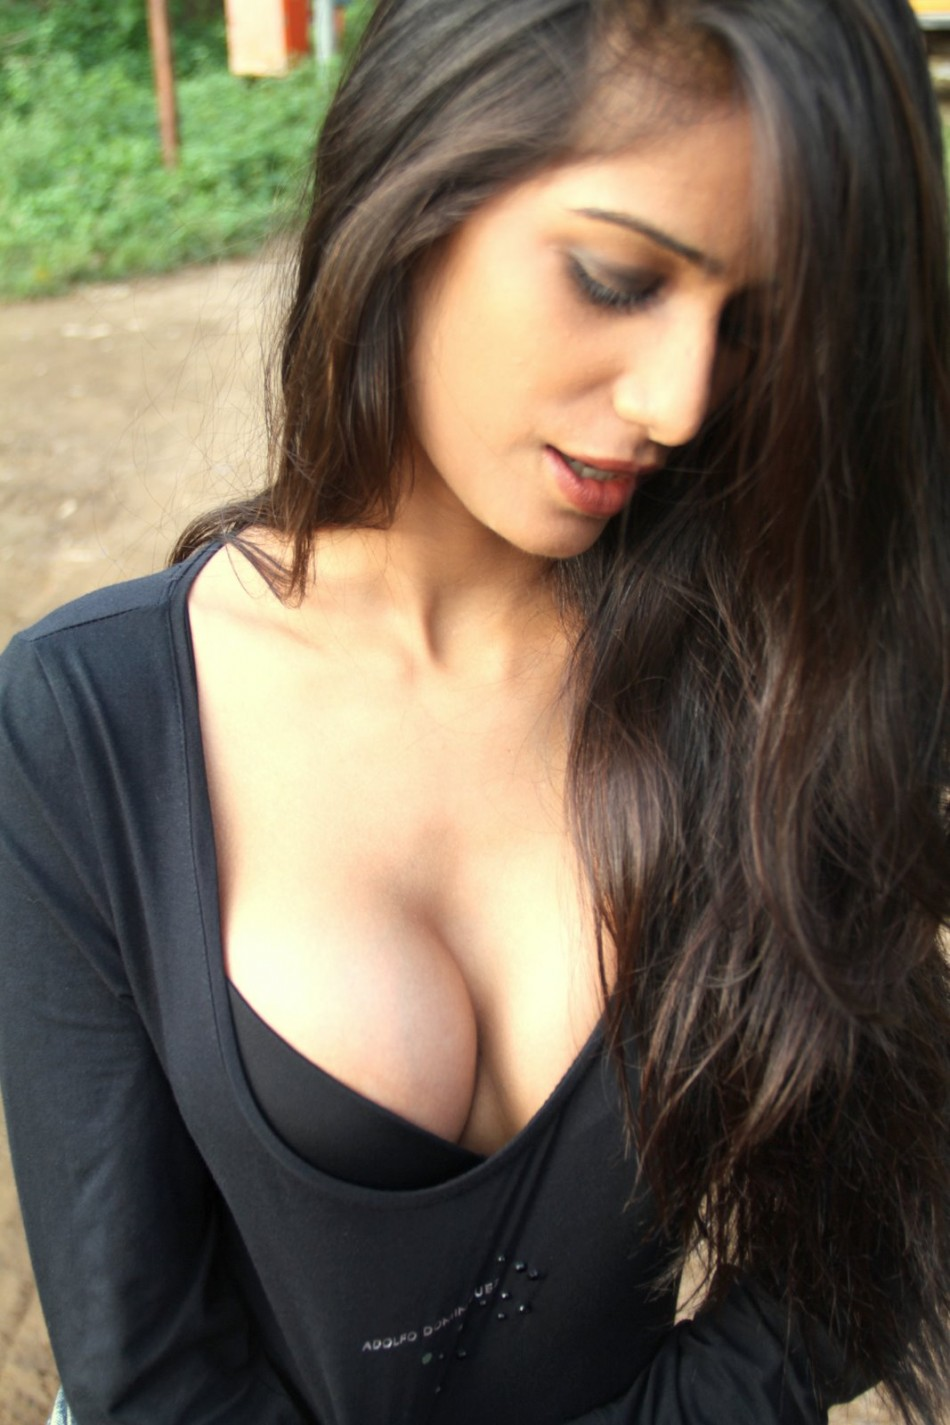 Hot pics of Kingfisher Model and Bollywood Actress Poonam Pandey